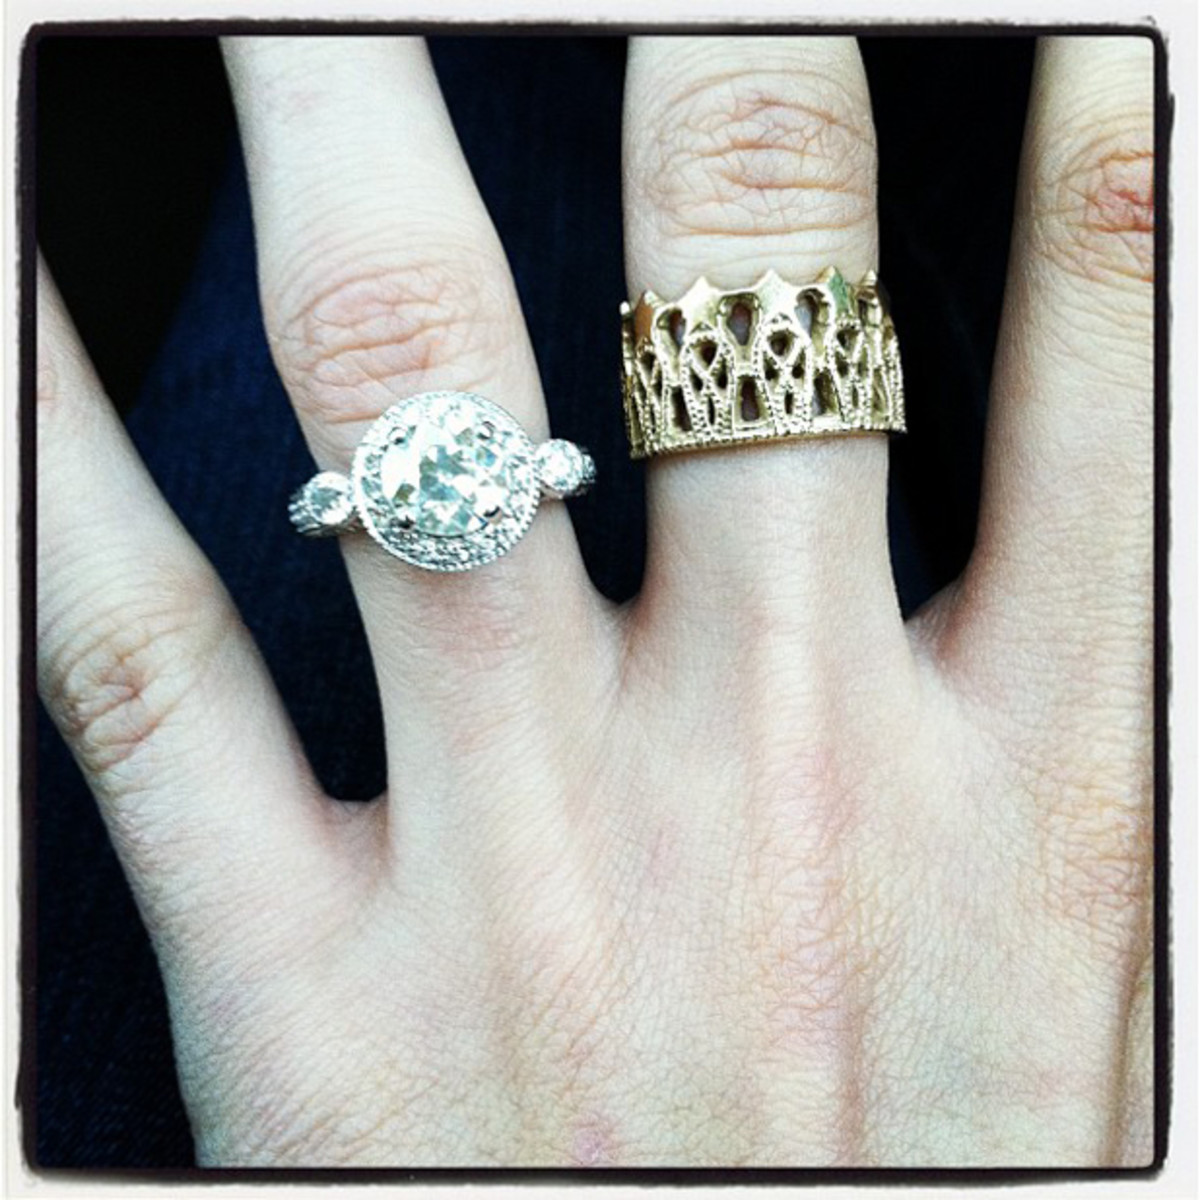 My 2 favorite pieces of jewelry in my collection- Gmas heirloom ring and my gold crown ring :)